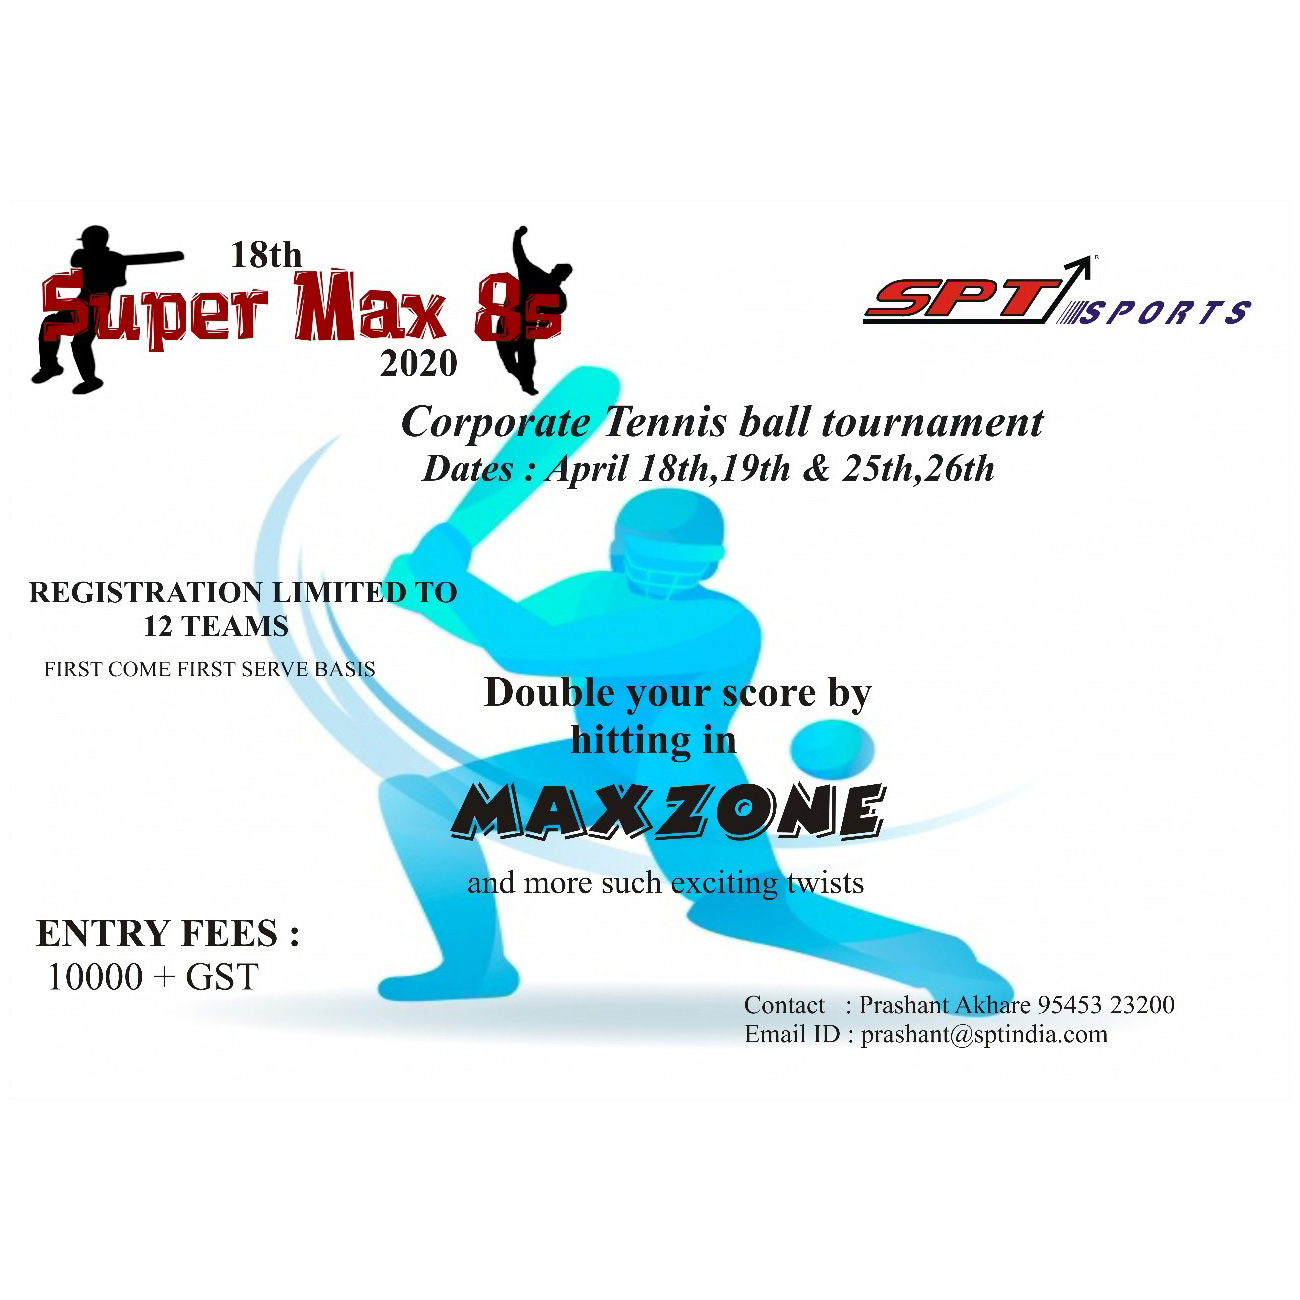 Super Max 8s Corporate Tennis Ball Tournament